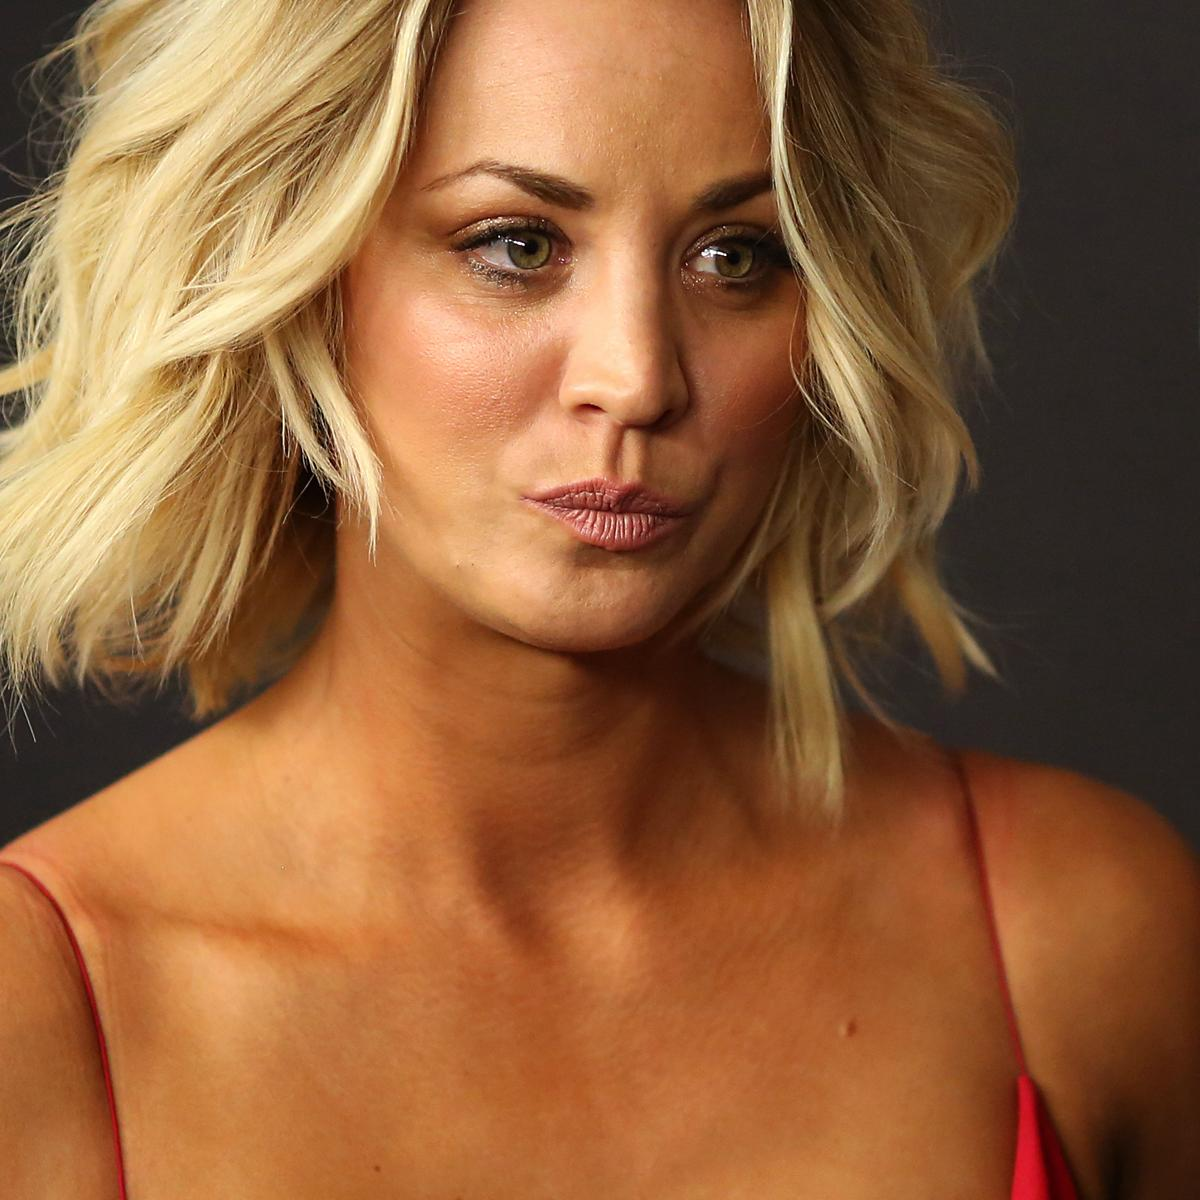 Kaley Cuoco's S&M-themed episode of Big Bang Theory banned from TV